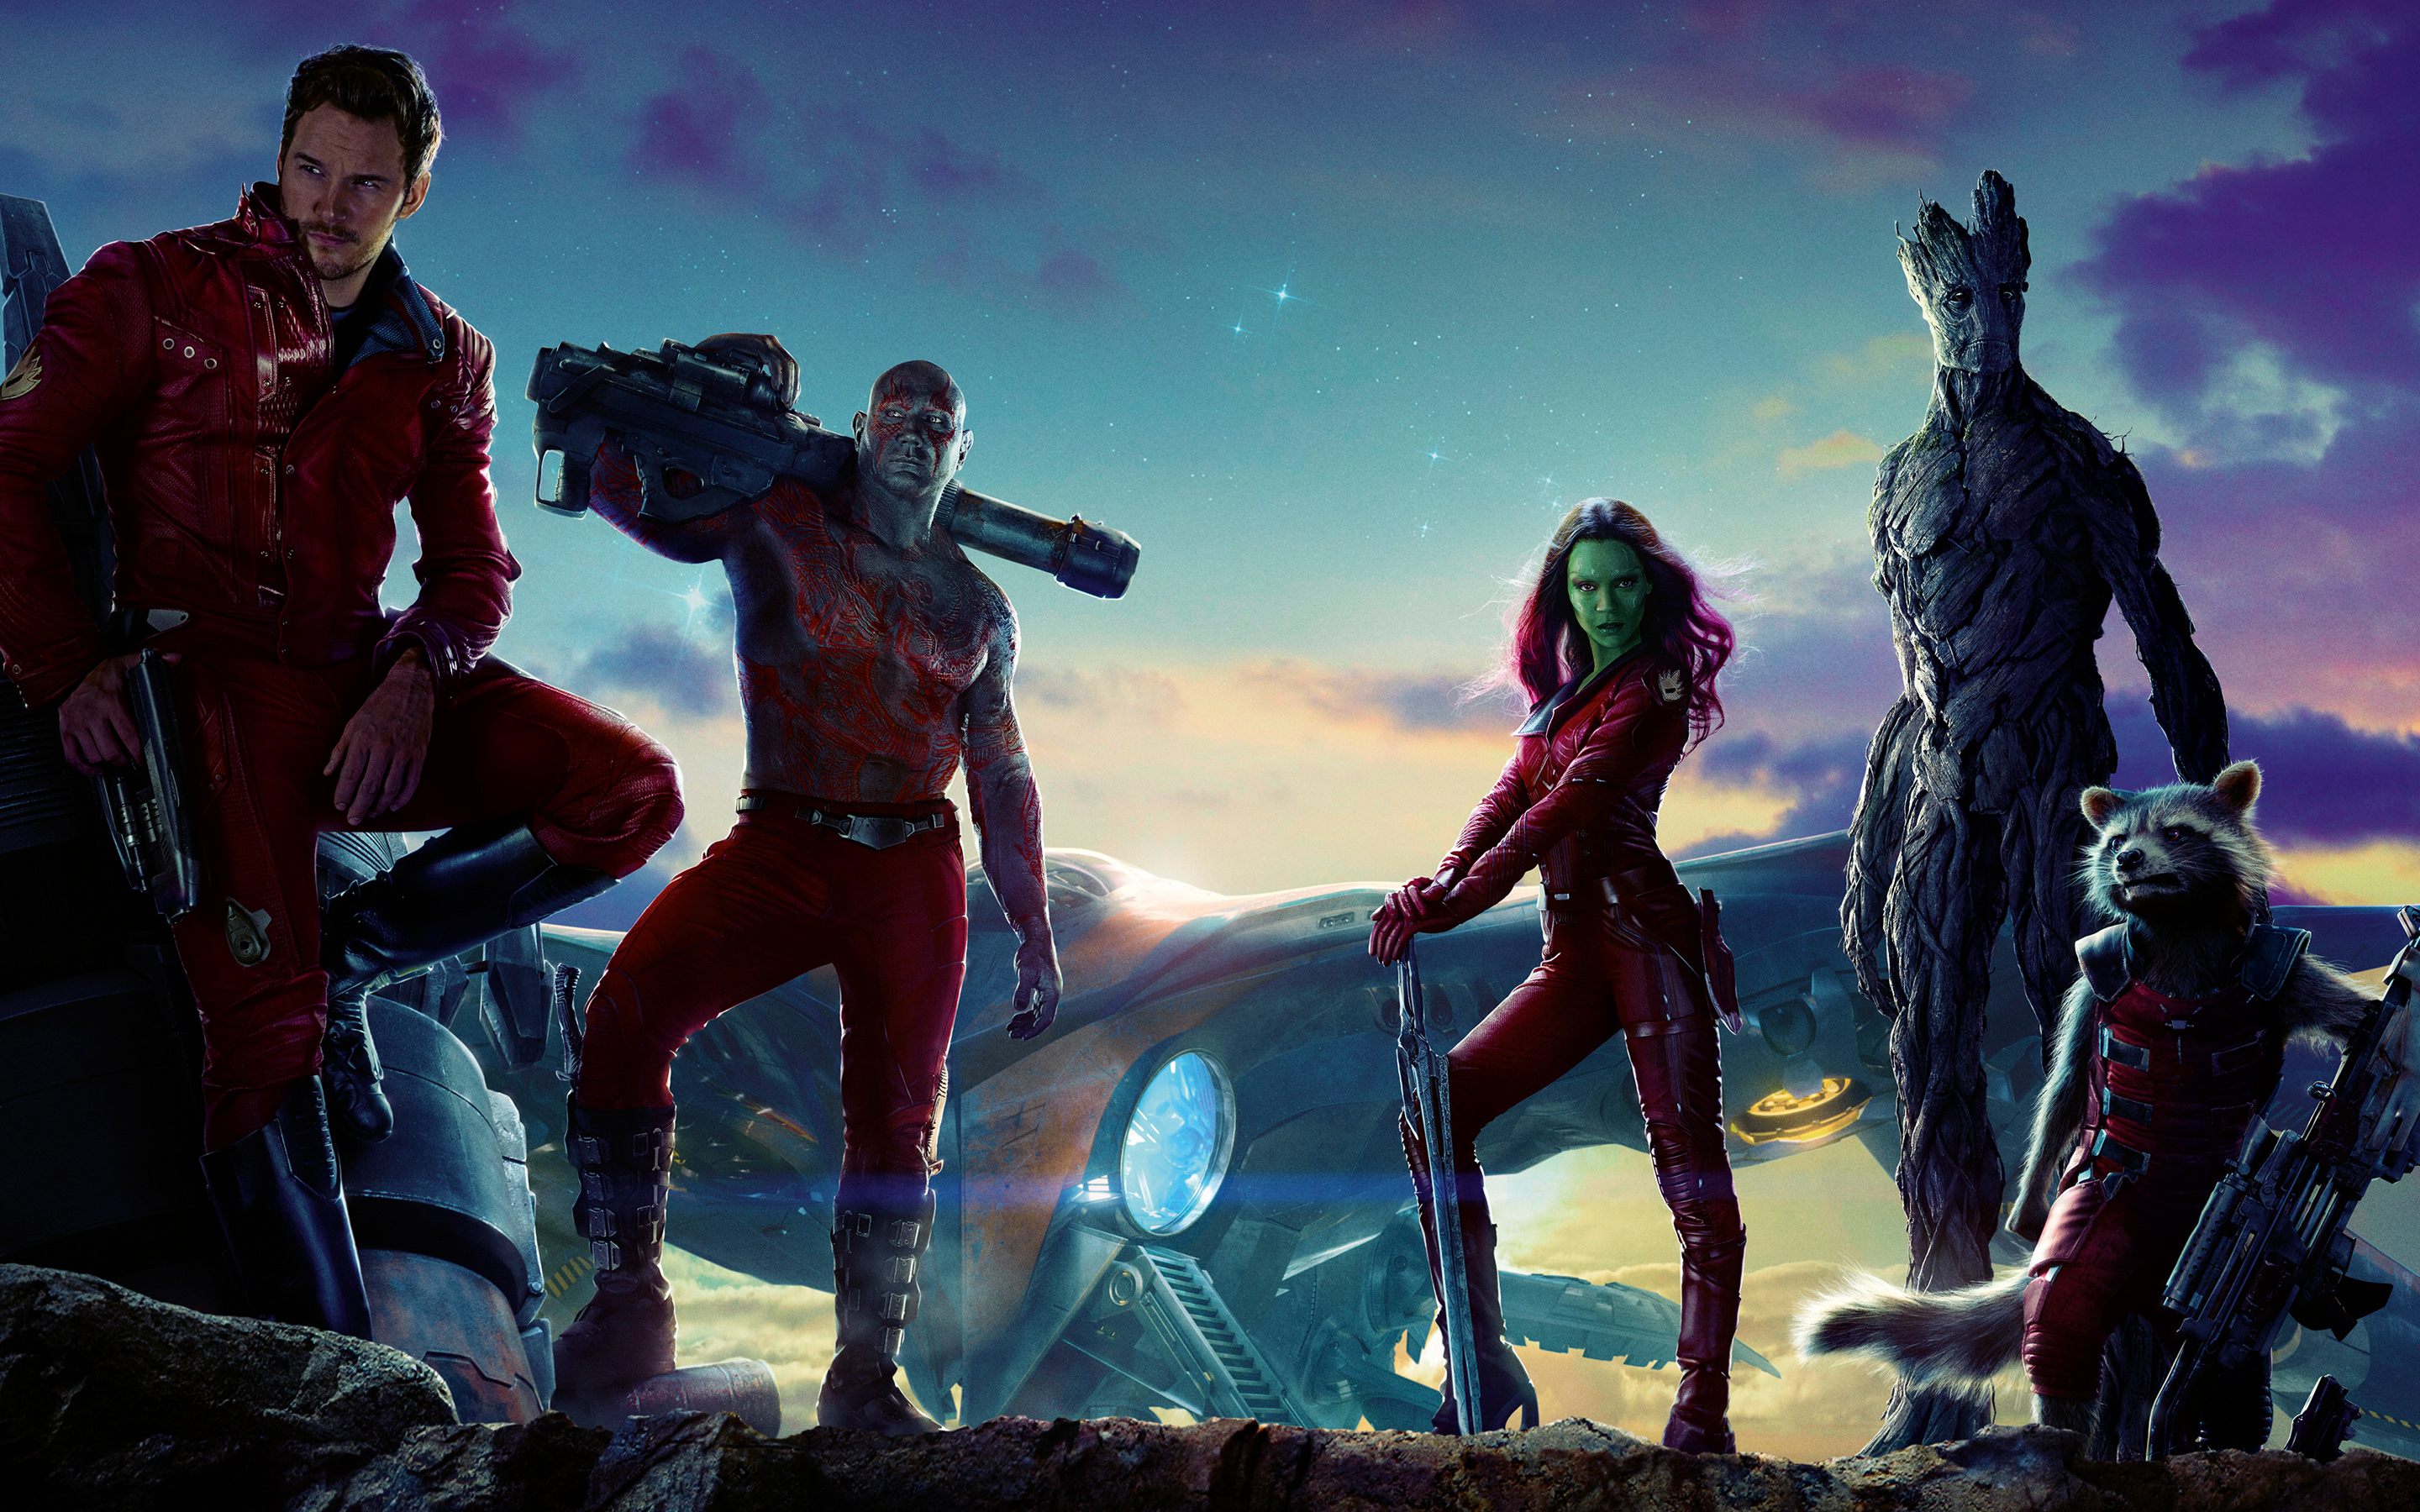 Guardians of the Galaxy Movie 1254.02 Kb